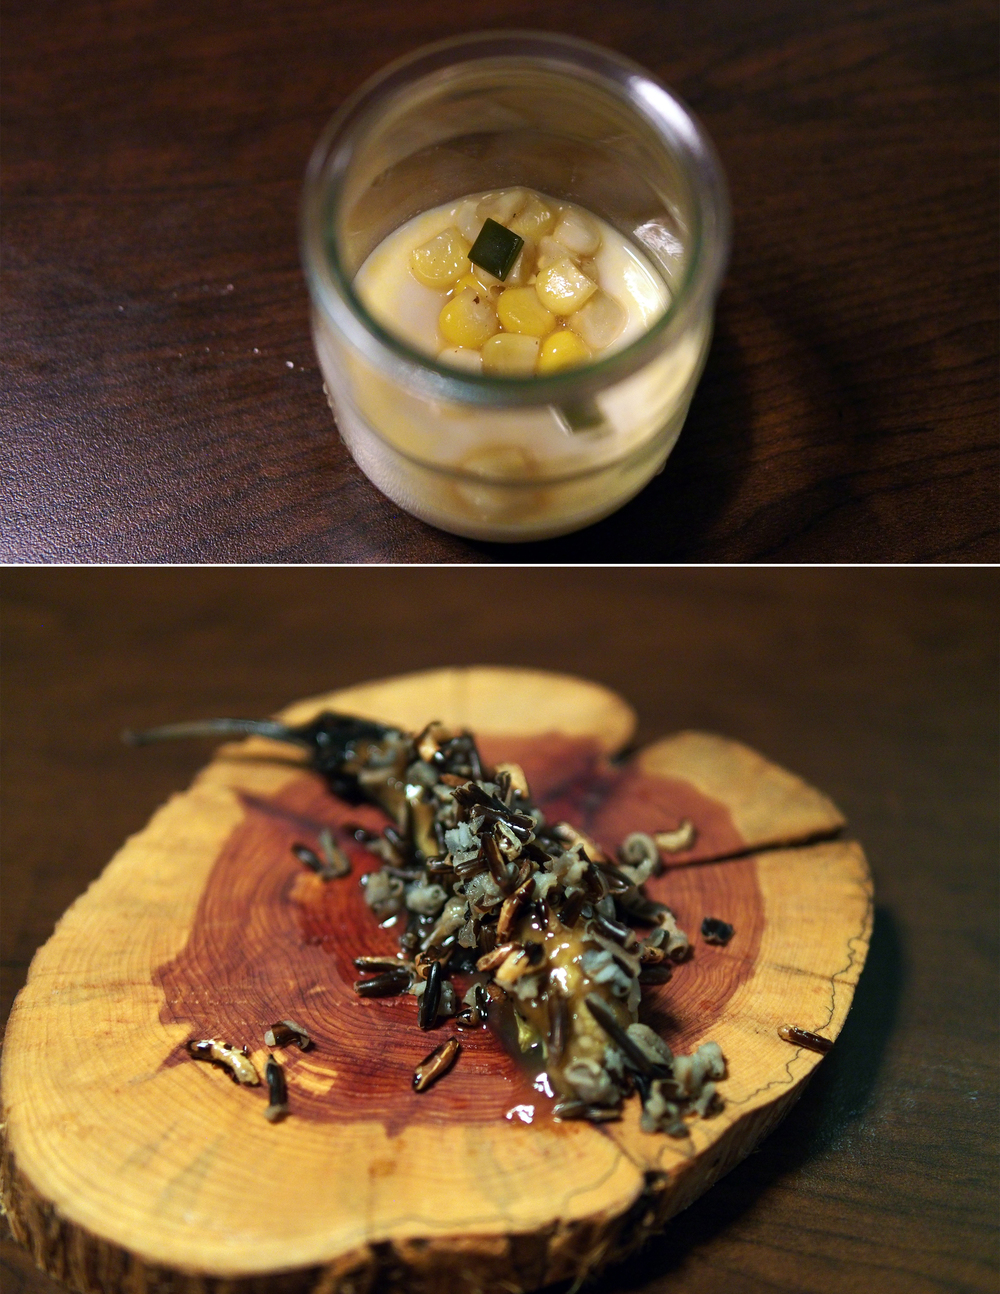 Top: Corn chawanmushi  Bottom: Roasted eggplant with crispy wild rice